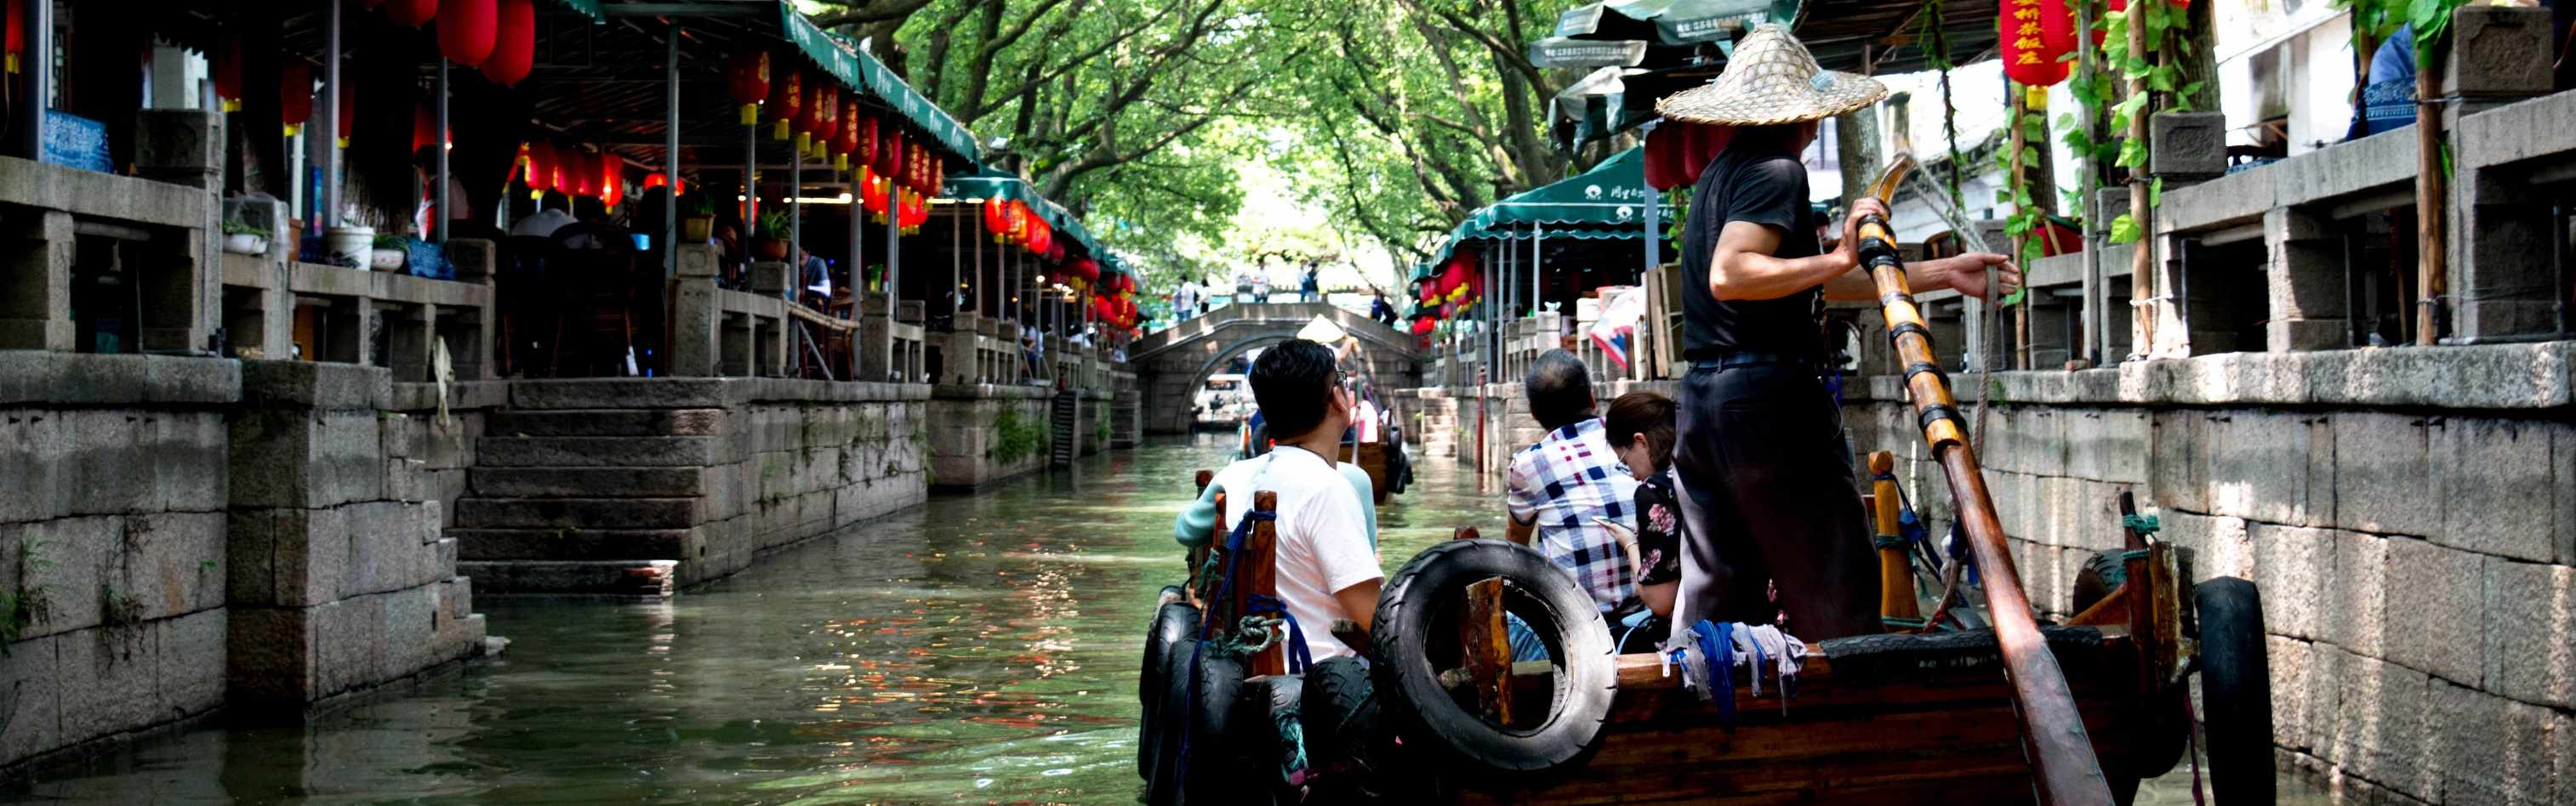 """A 1000-year-old water town known as Tongli. It is from an area just outside Shanghai that is often referred to as the """"Venice of the East"""""""